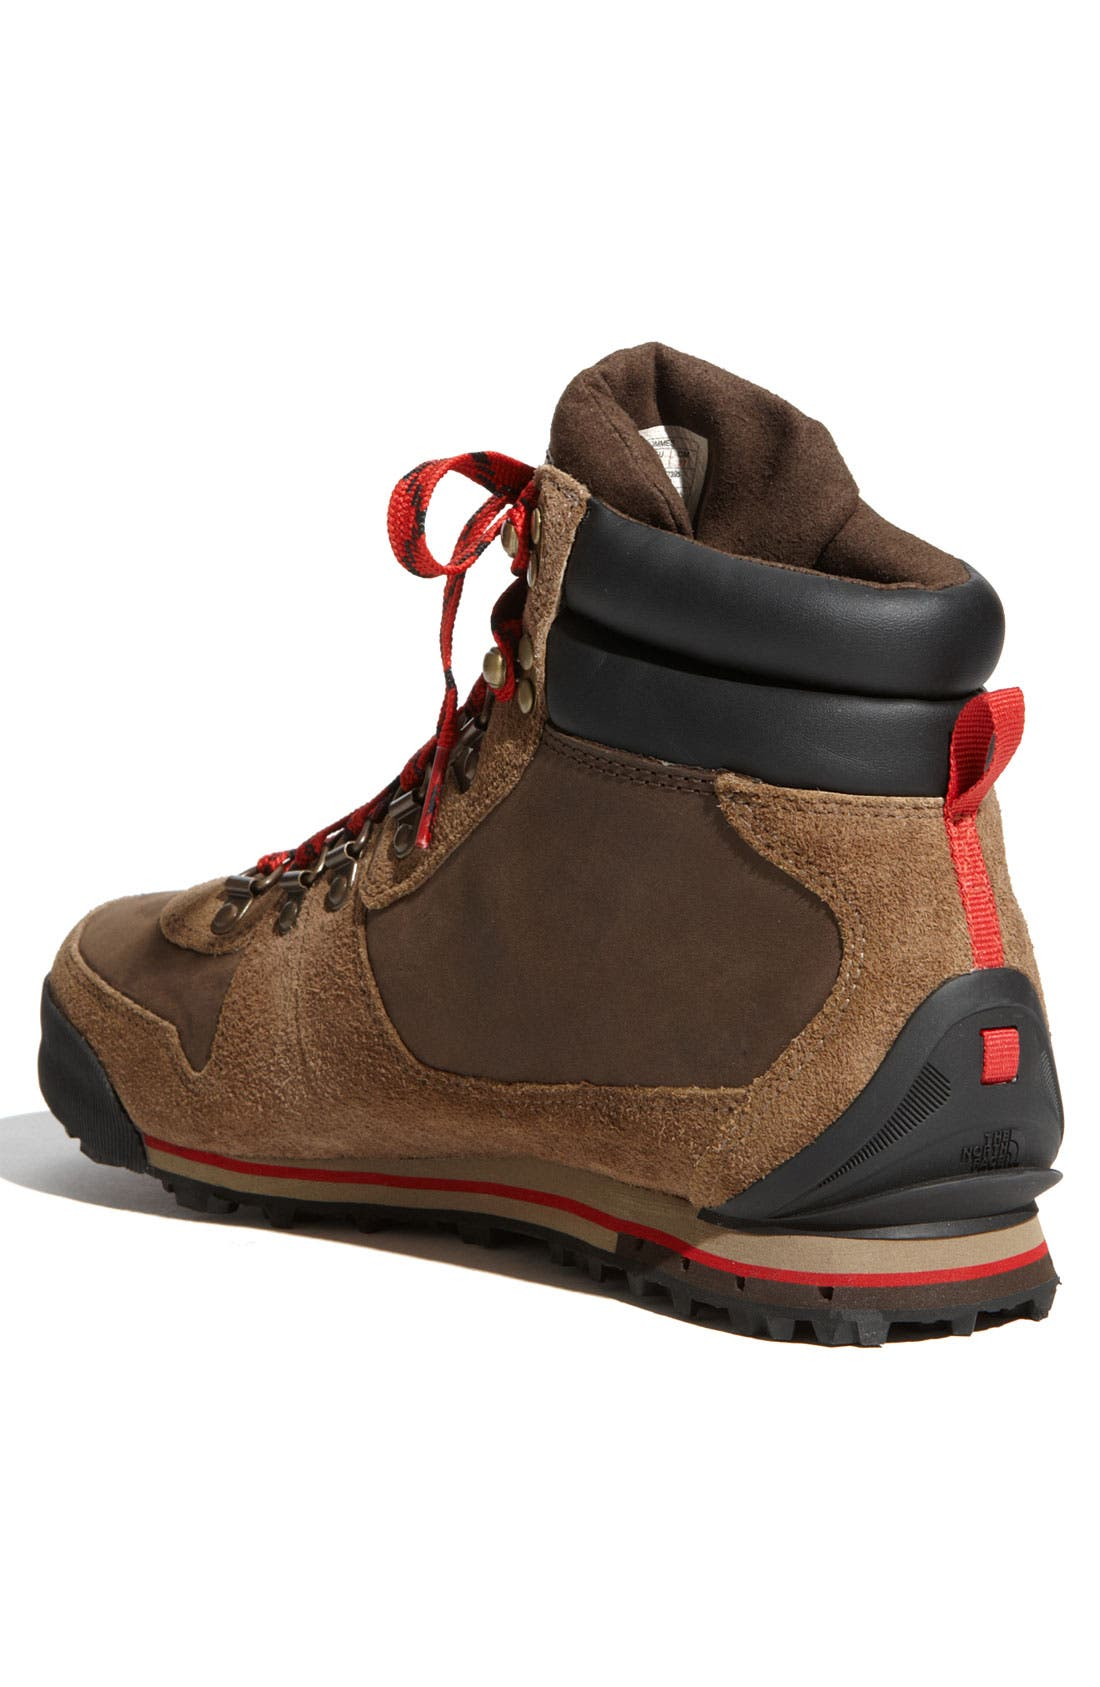 Alternate Image 2  - The North Face 'Back to Berkeley' Boot